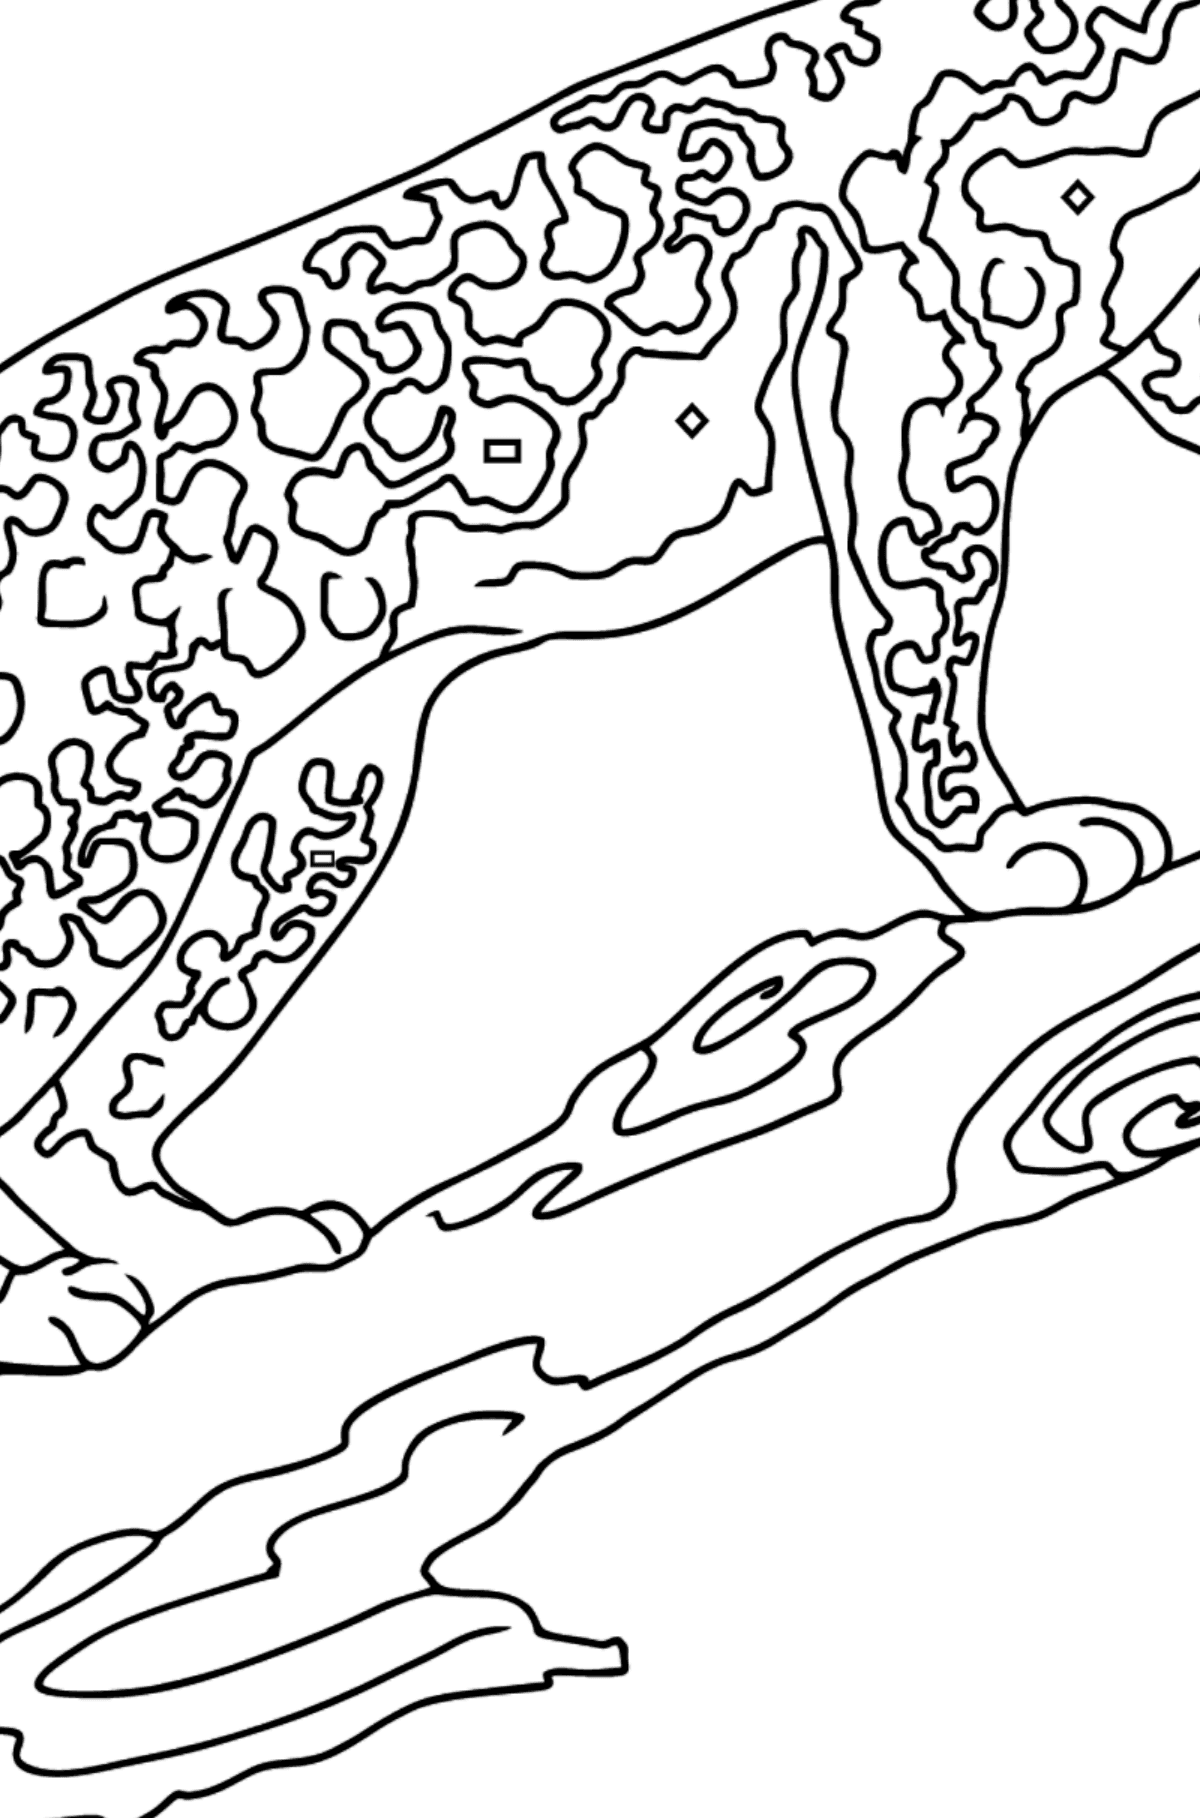 Coloring Page - A Leopard is Getting Ready for a Jump - Coloring by Geometric Shapes for Kids